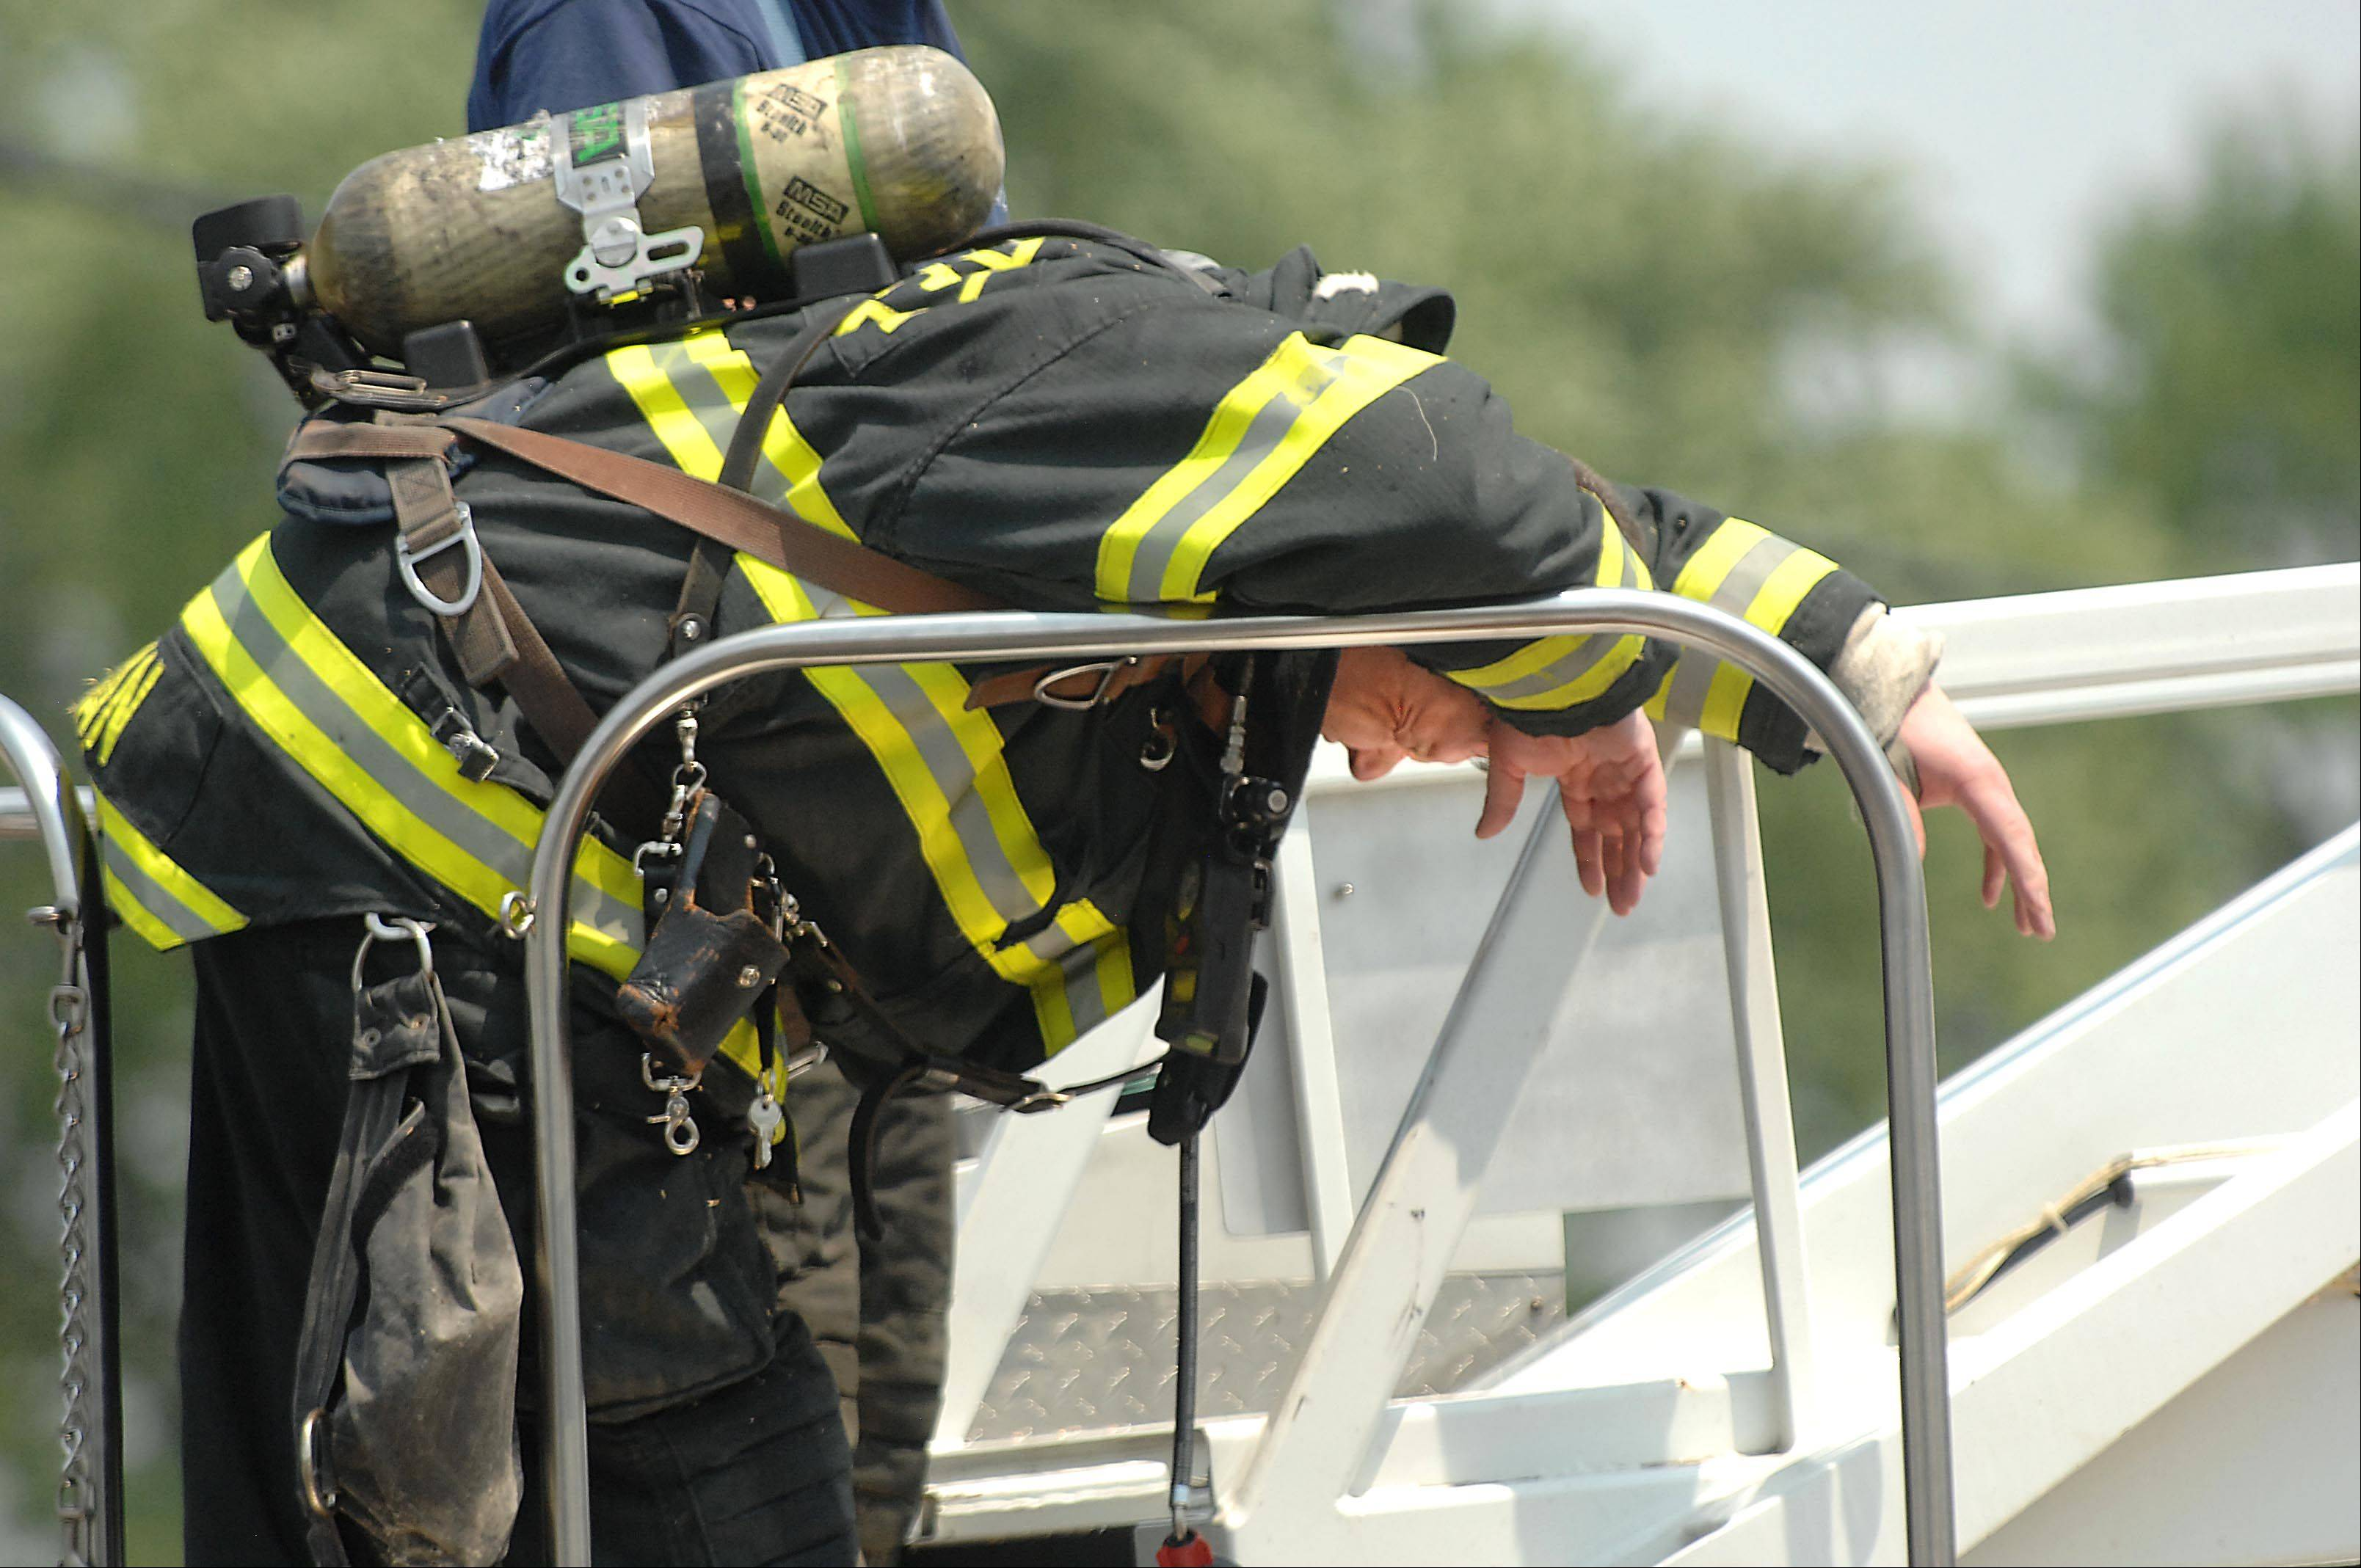 West Dundee firefighter Dan Kilian breaths deeply after working with a saw on a ladder as firefighters from several departments battled the heat and fire at Community Thrift Store in East Dundee Thursday afternoon. He came down from the ladder truck and went for treatment at a waiting ambulance.